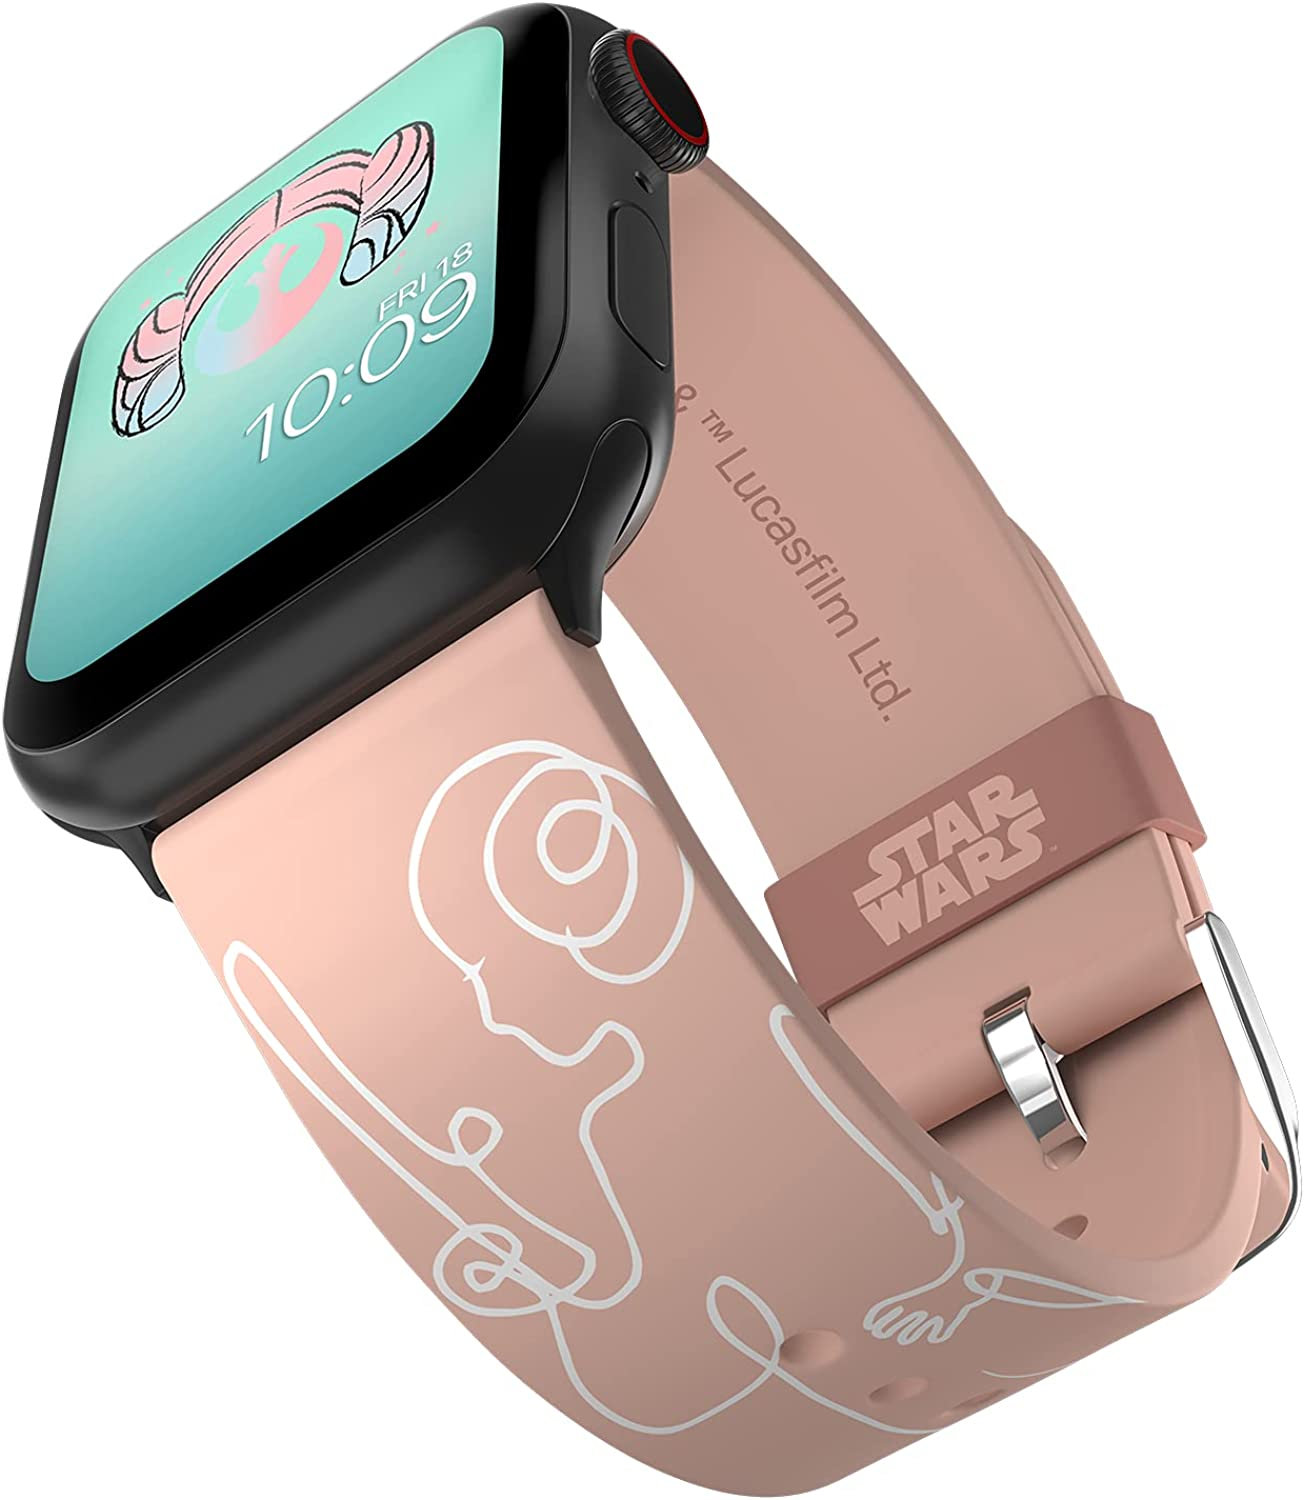 STAR WARS - Leia Organa Edition Smartwatch Band - Officially Licensed, Compatible with Apple Watch (not Included) - Fits 38mm, 40mm, 42mm and 44mm